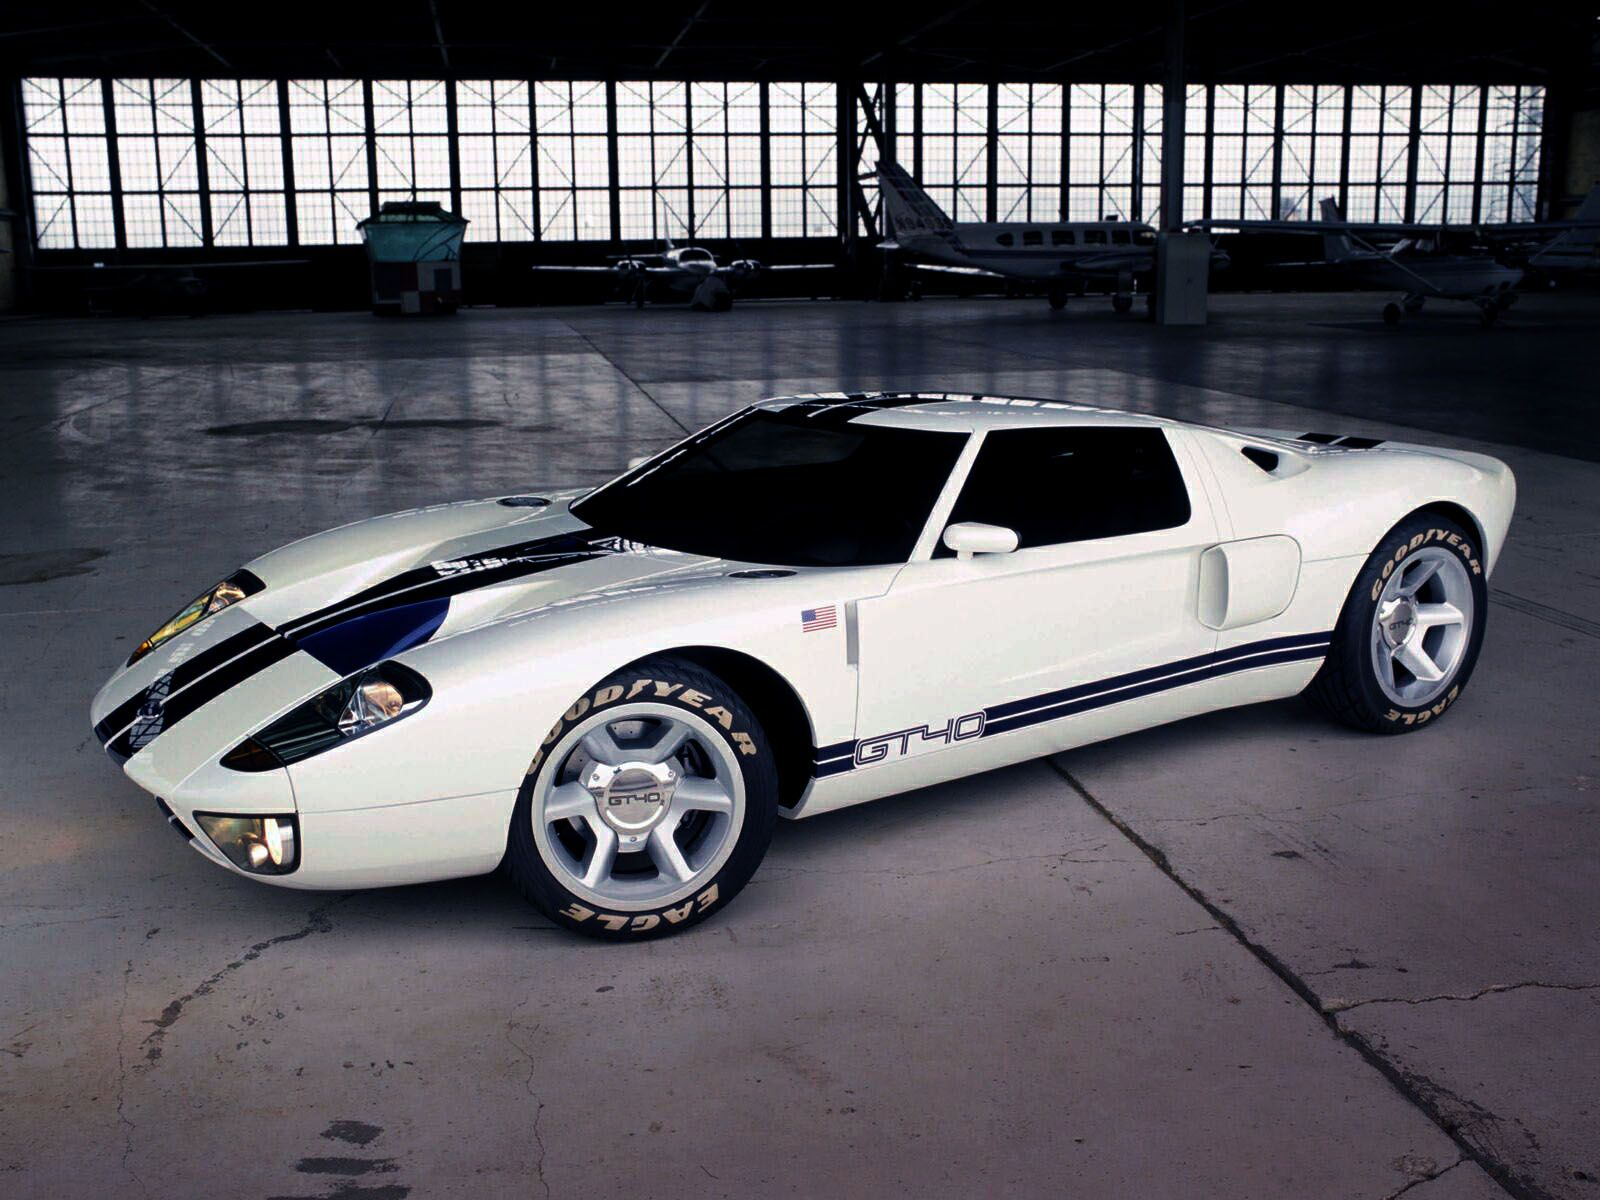 Ford Gt   Twin Turbo   Liter Supercharged V  Engine That Produces  Horsepower At  Rpm The Gt Has A   Mph Time Of